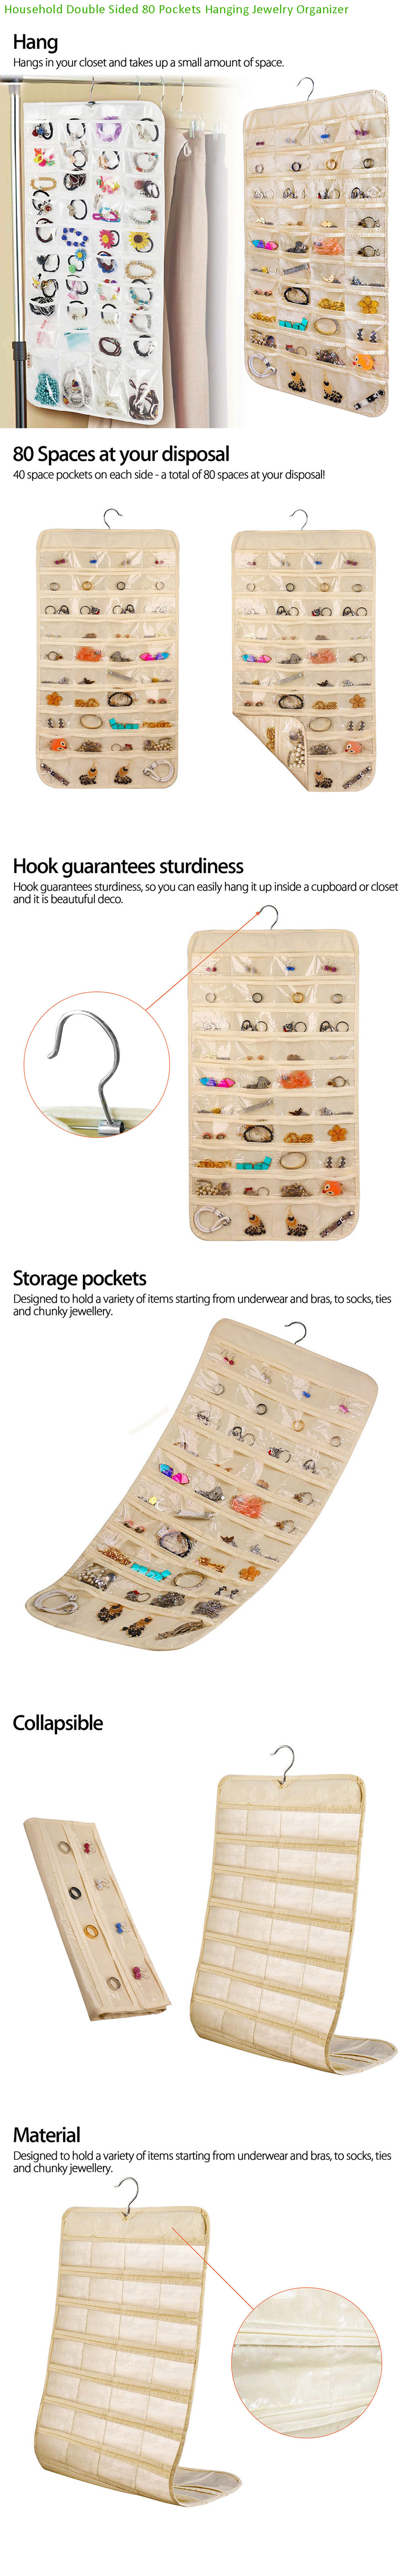 80 Pocket Hanging Jewelry Organizer Storage for Holding Earring